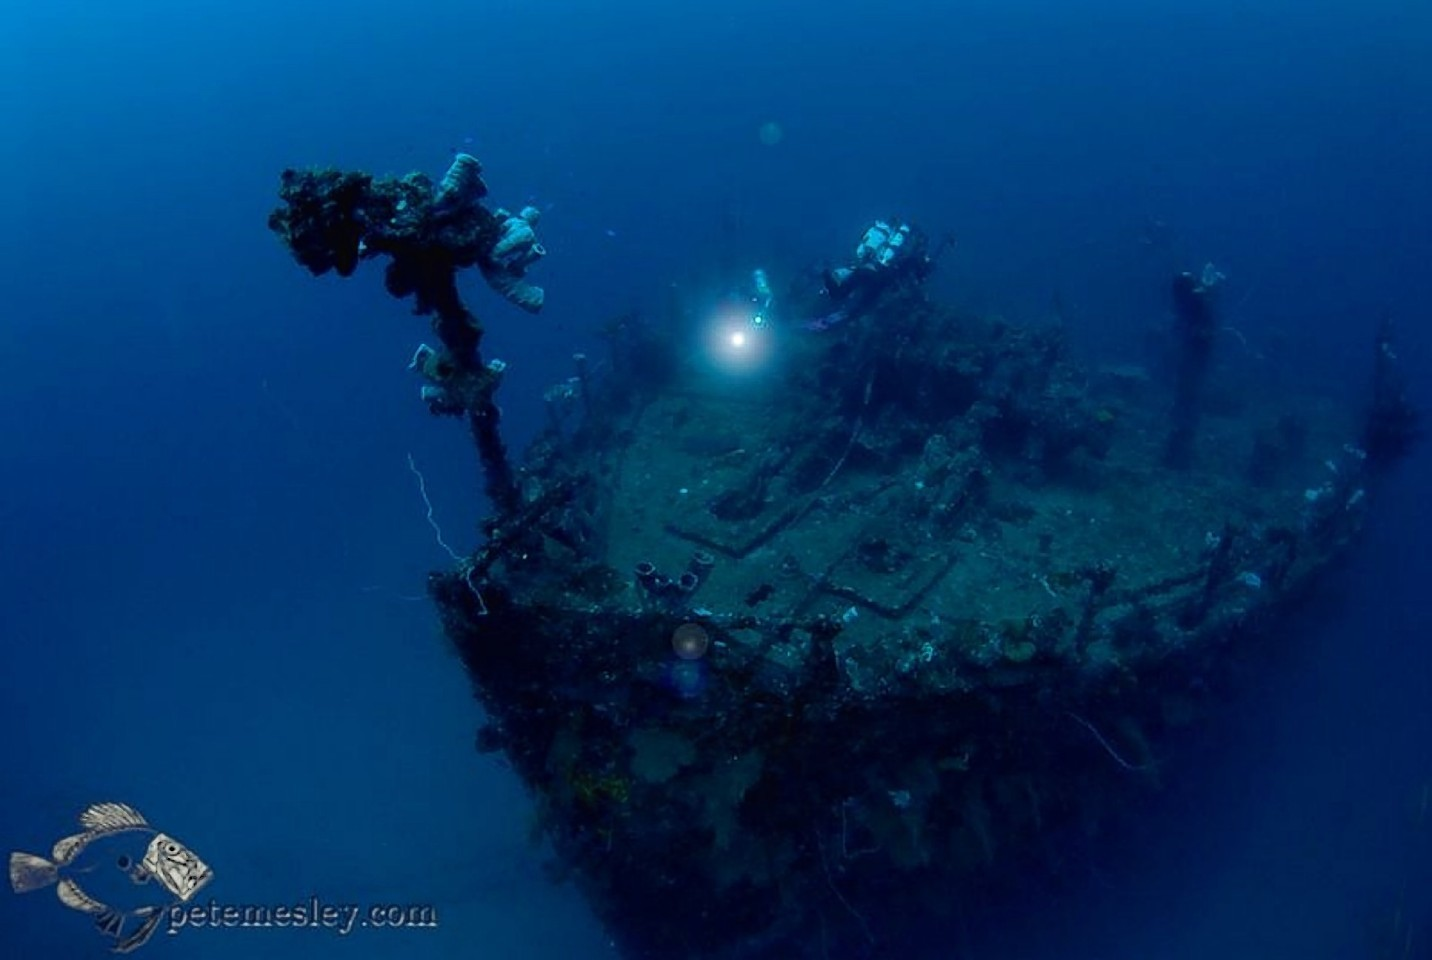 The divers survey the Japanese shipwrecks